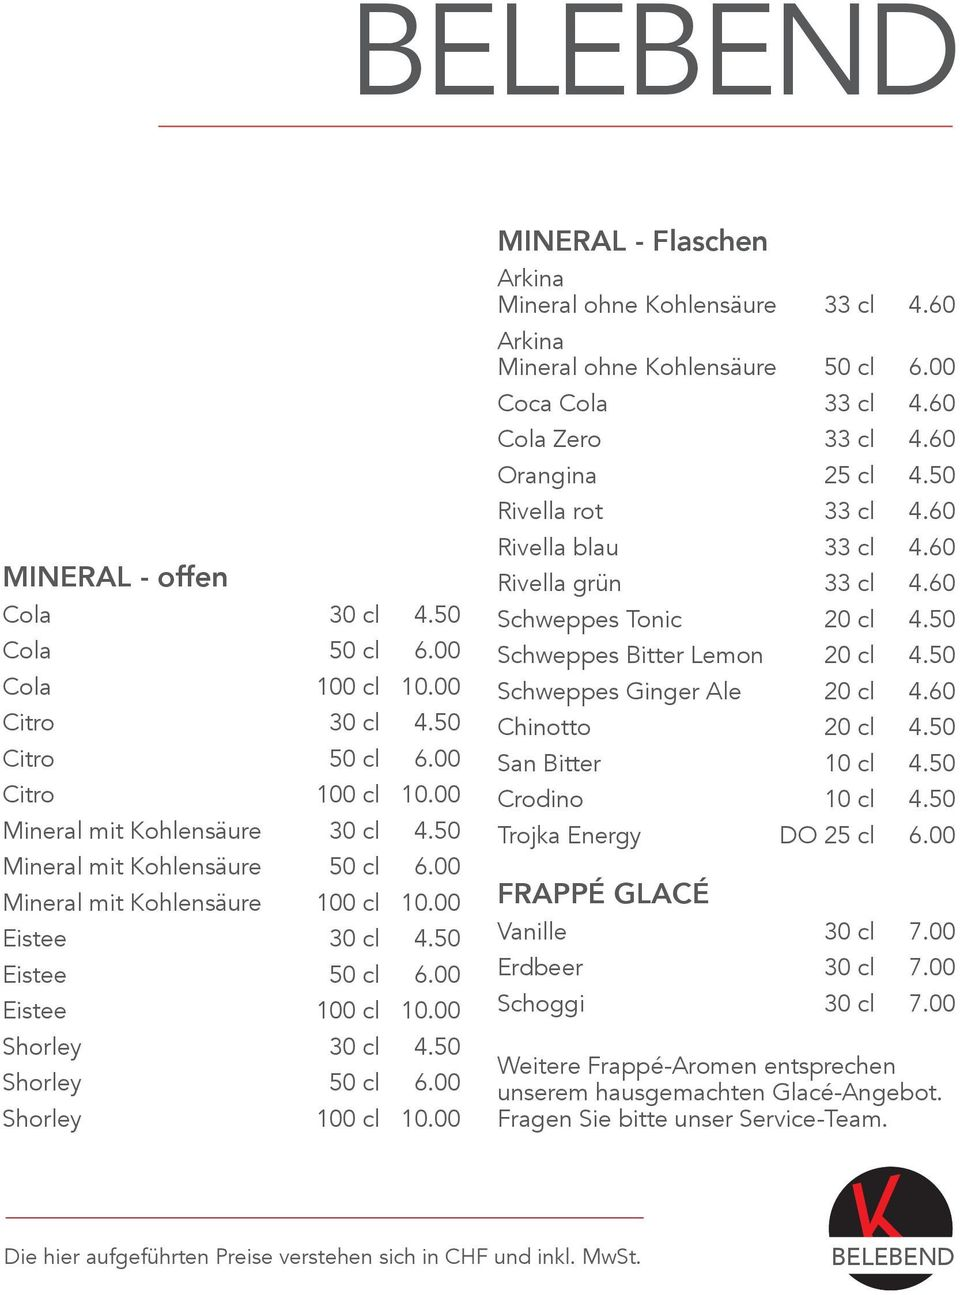 00 MINERAL - Flaschen Arkina Mineral ohne Kohlensäure 33 cl 4.60 Arkina Mineral ohne Kohlensäure 50 cl 6.00 Coca Cola 33 cl 4.60 Cola Zero 33 cl 4.60 Orangina 25 cl 4.50 Rivella rot 33 cl 4.